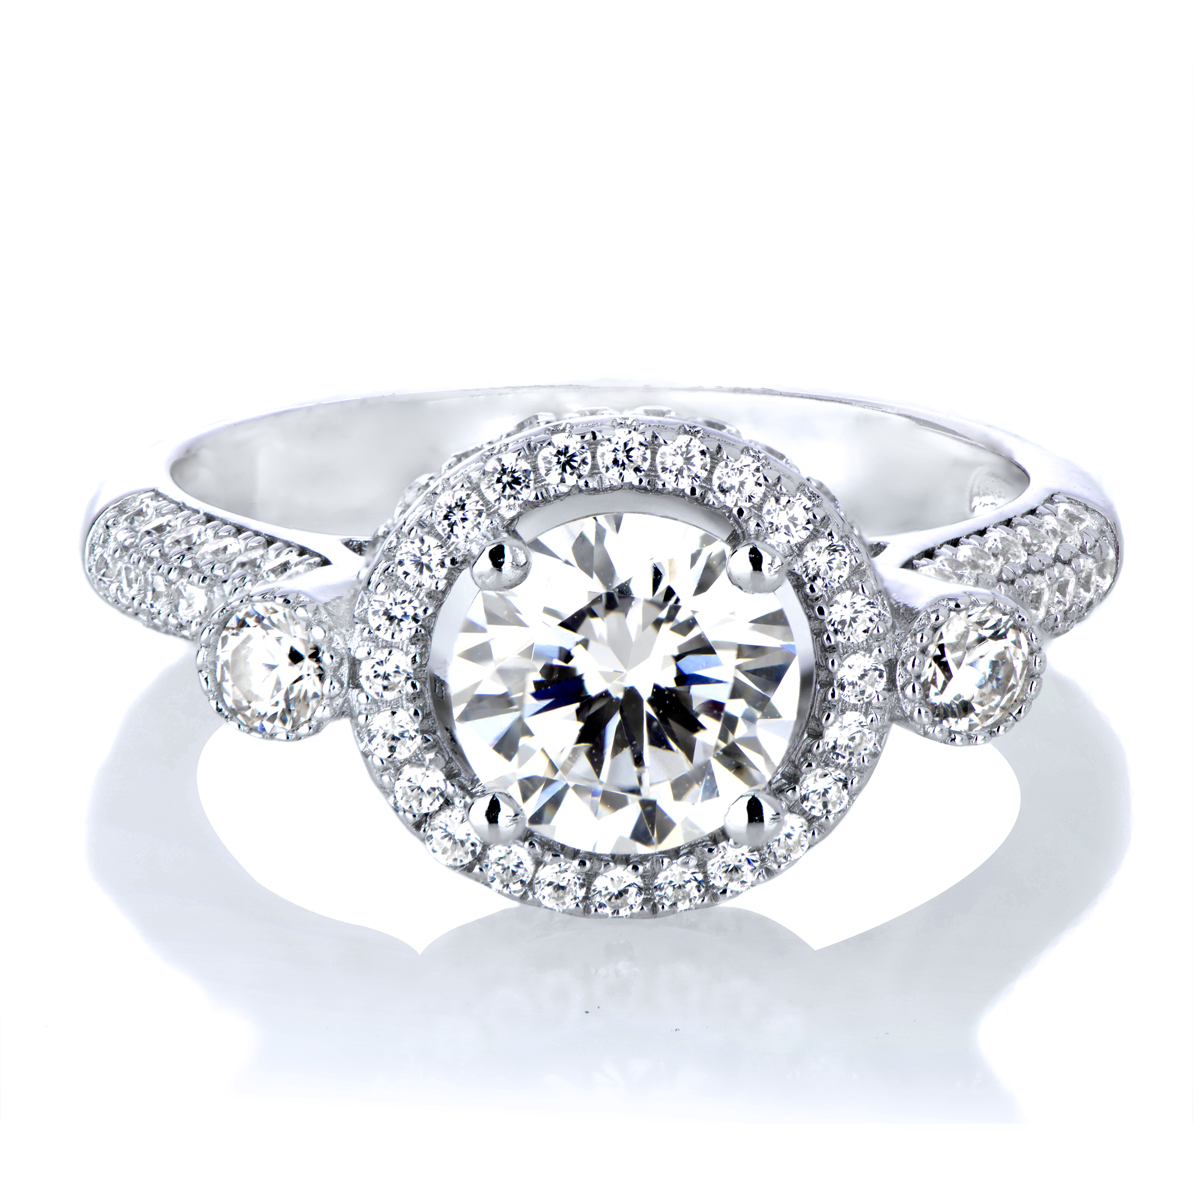 Round antique style engagement rings